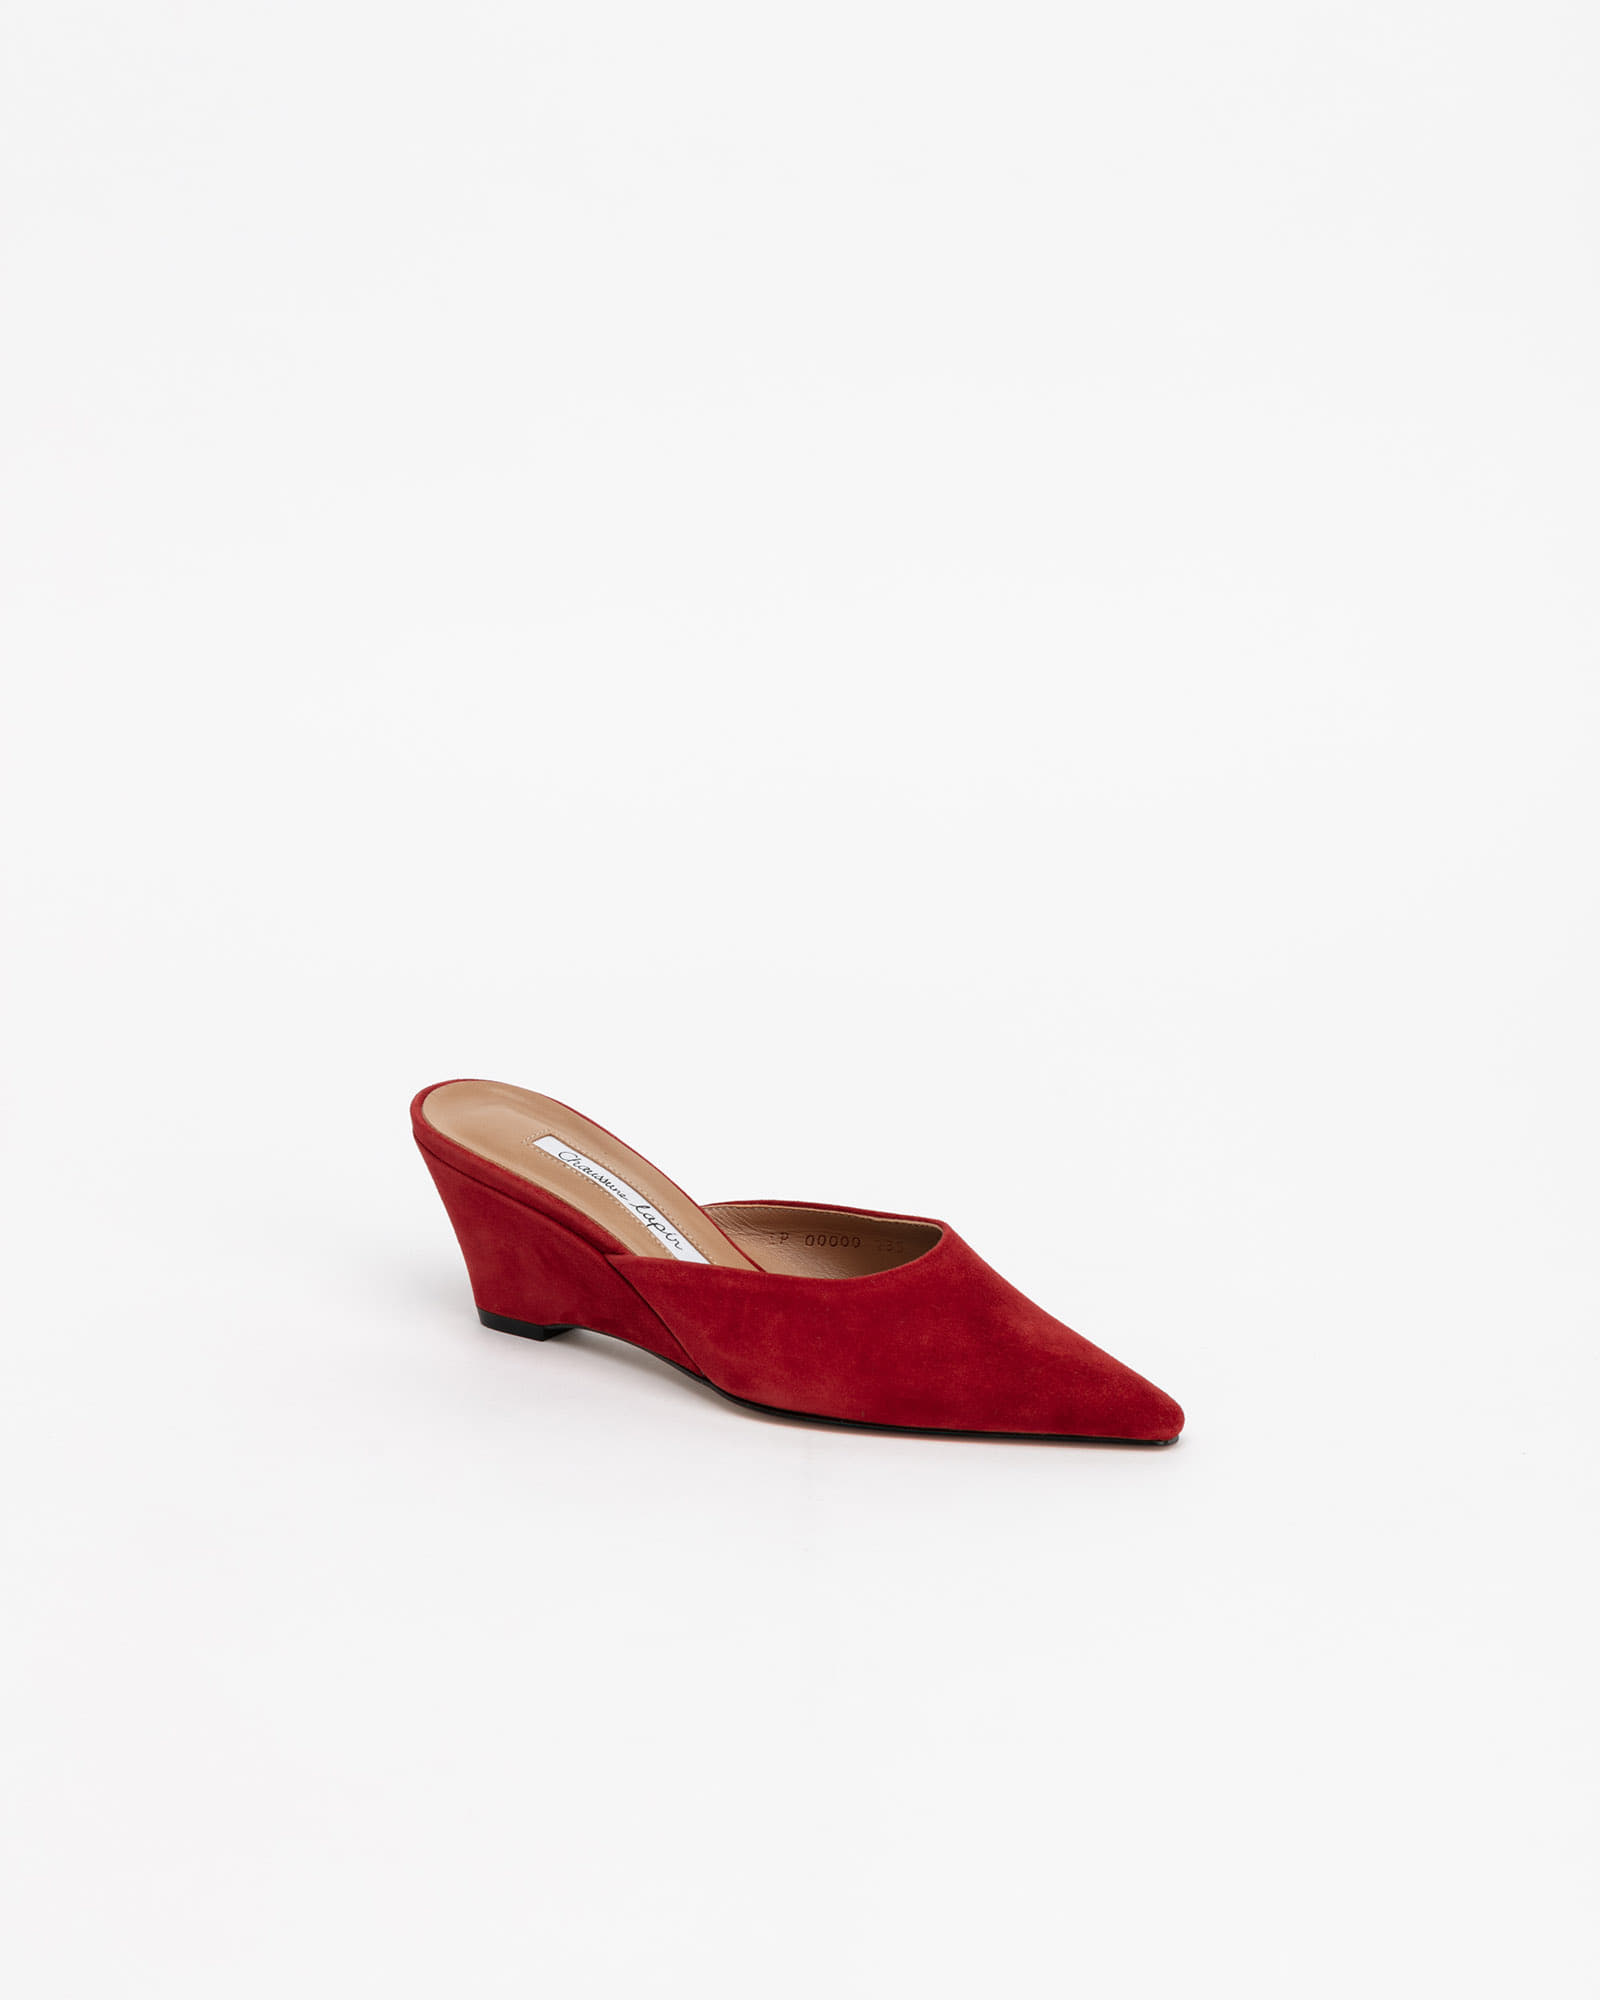 Mune Wedge Mules in Pigment Red Suede